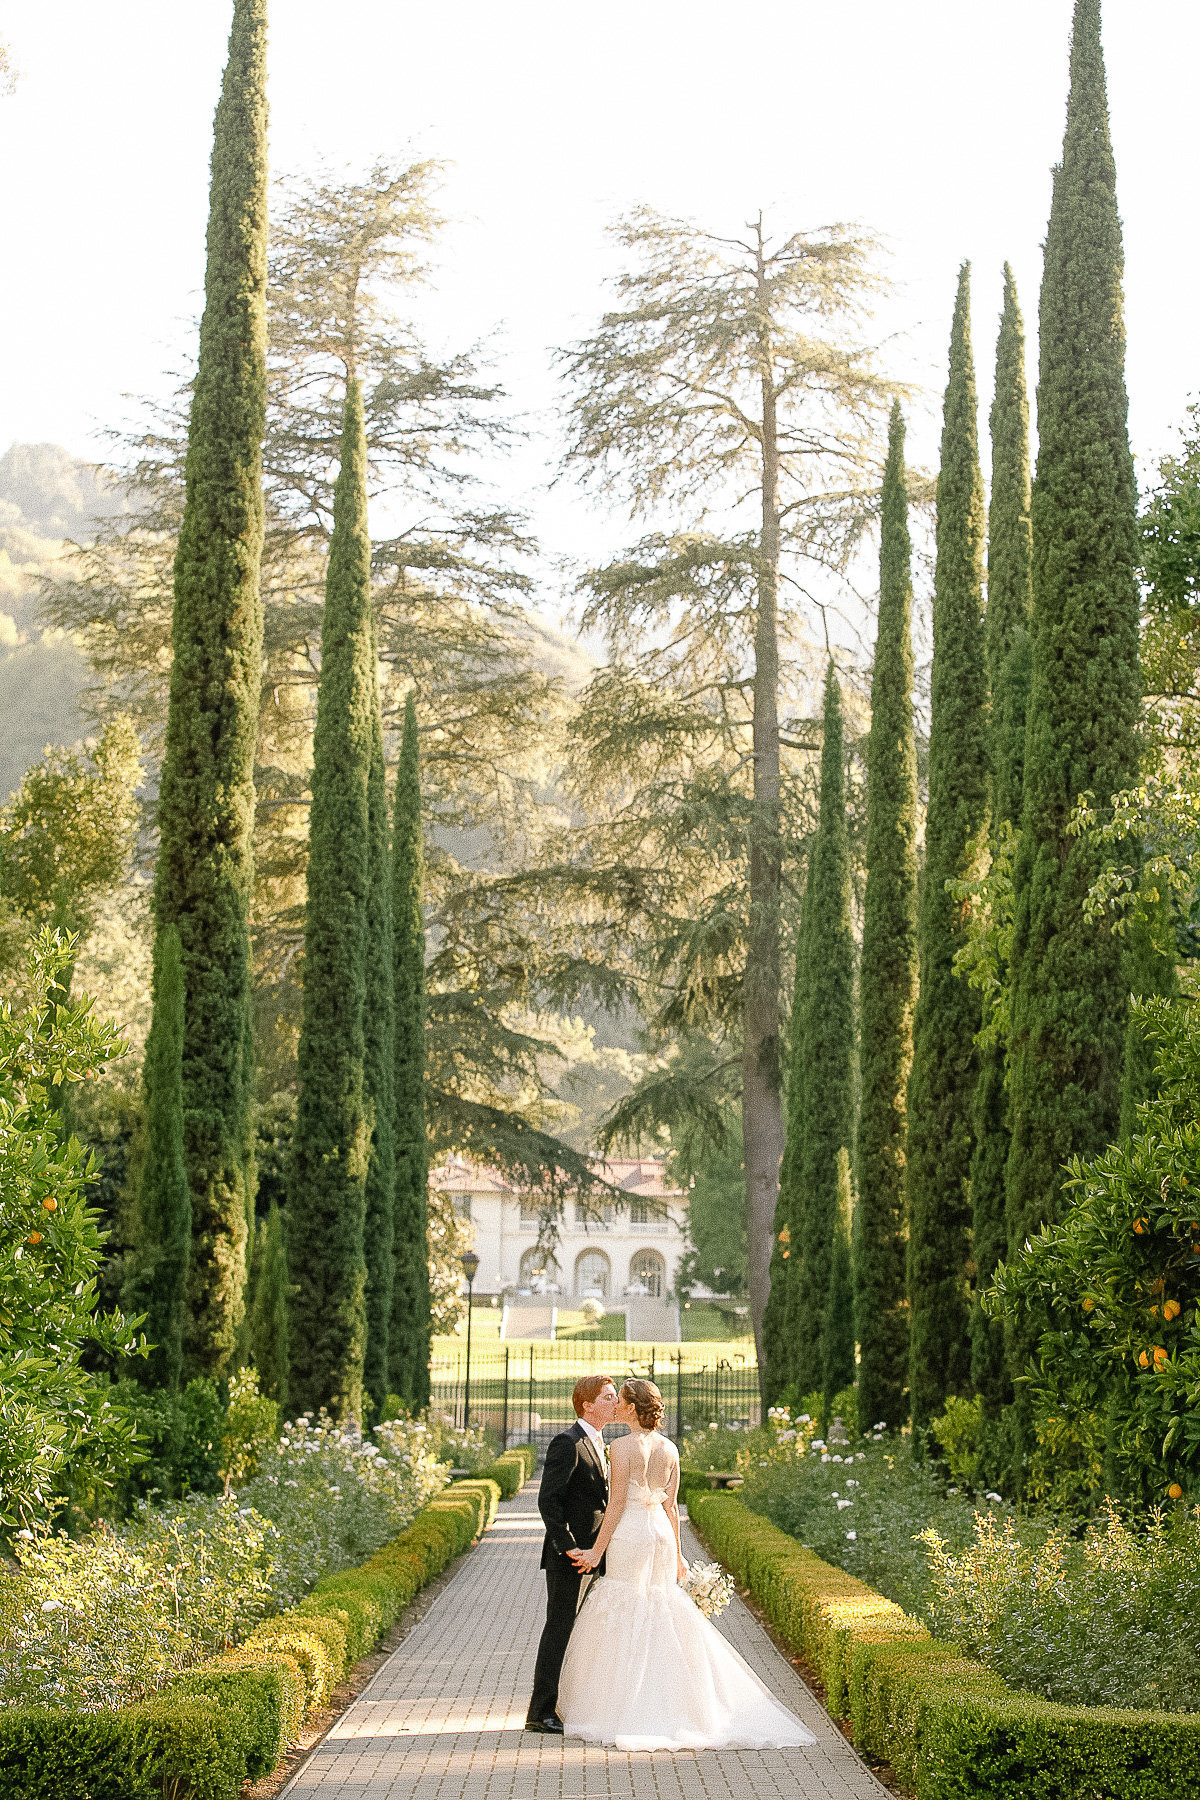 Bride and groom at their wedding at Villa Montalvo.